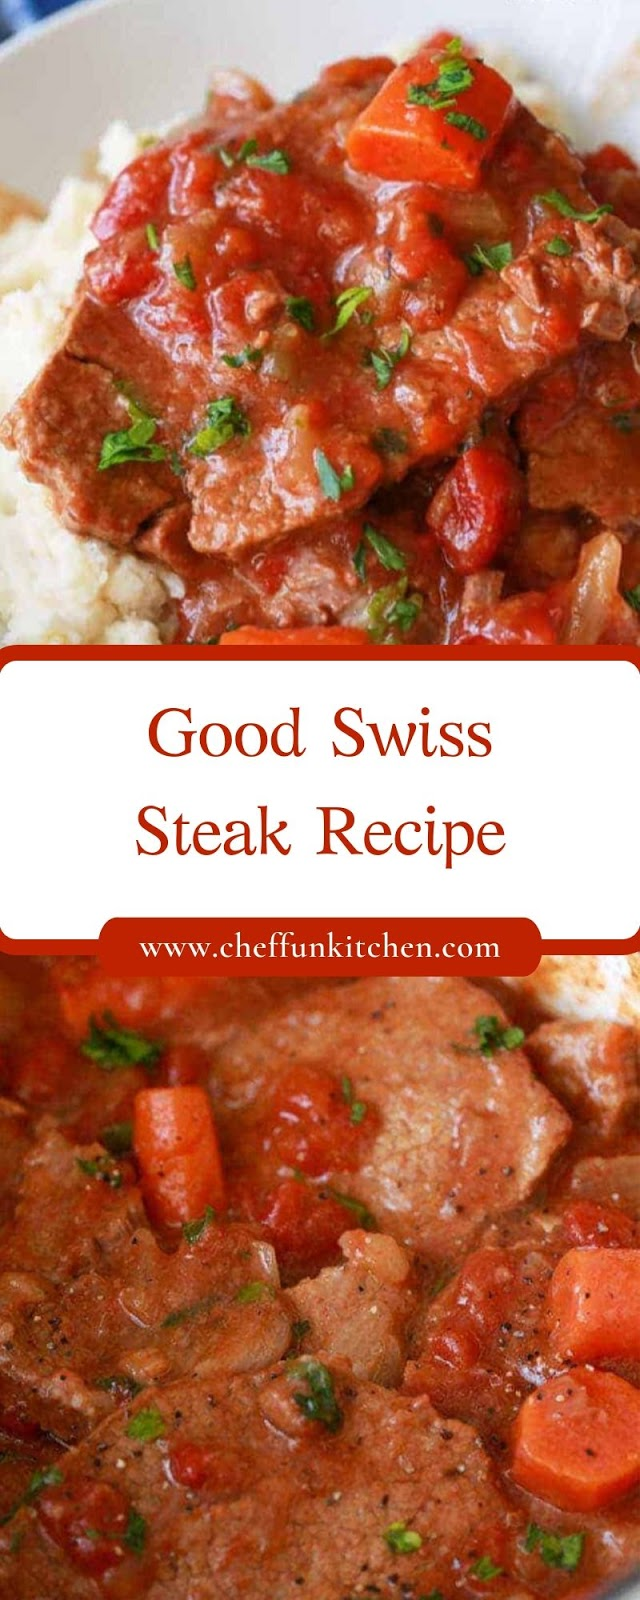 Good Swiss Steak Recipe